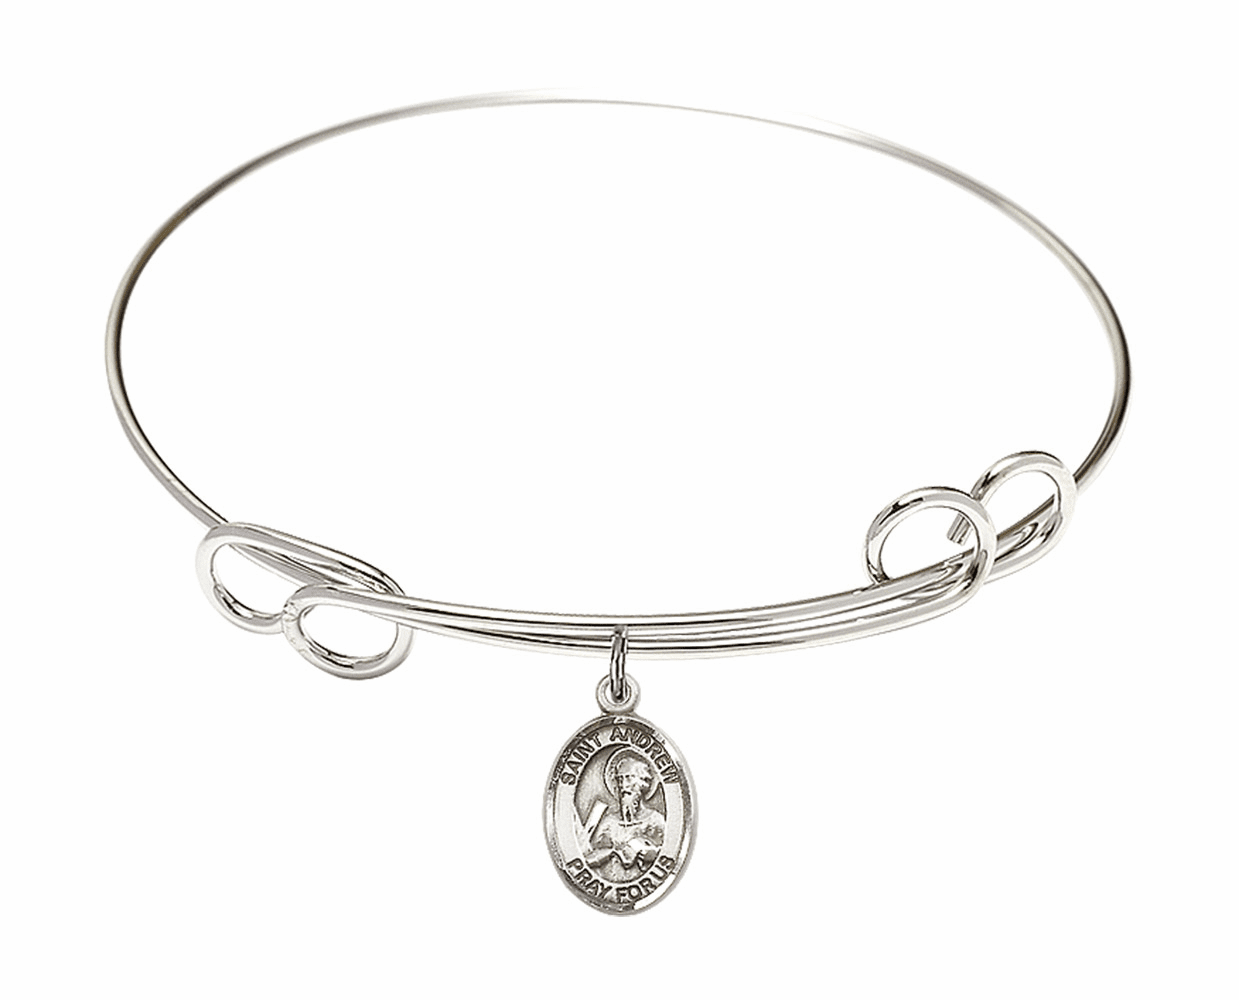 Round Loop St Andrew Bangle Charm Bracelet by Bliss